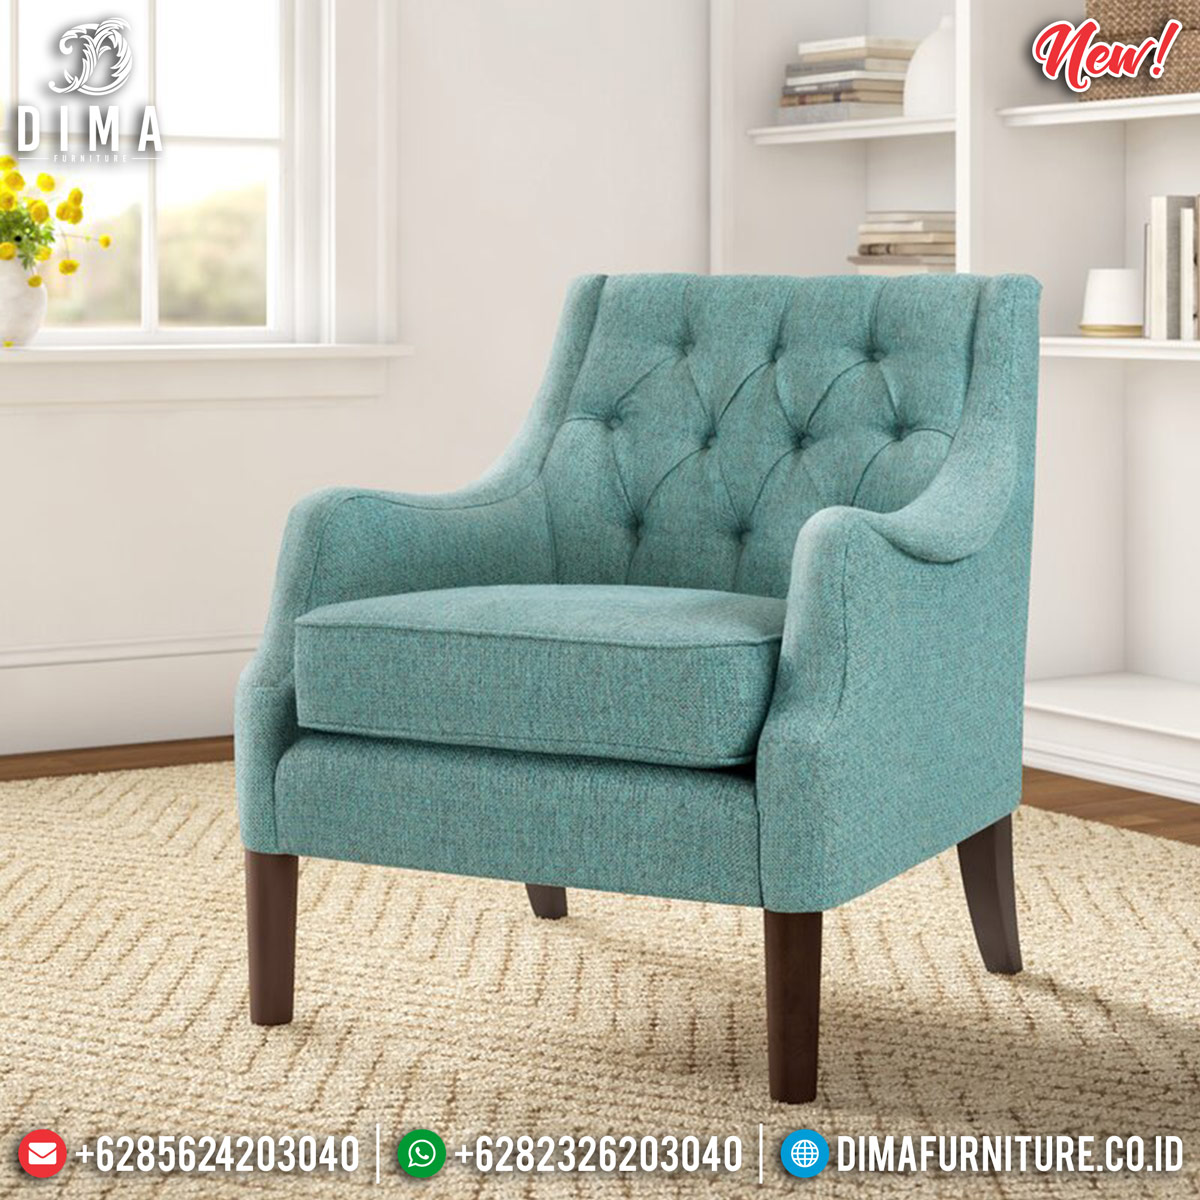 Epic Desain Sofa Minimalis Single Seater New Luxury Furniture Jepara MMJ-0818